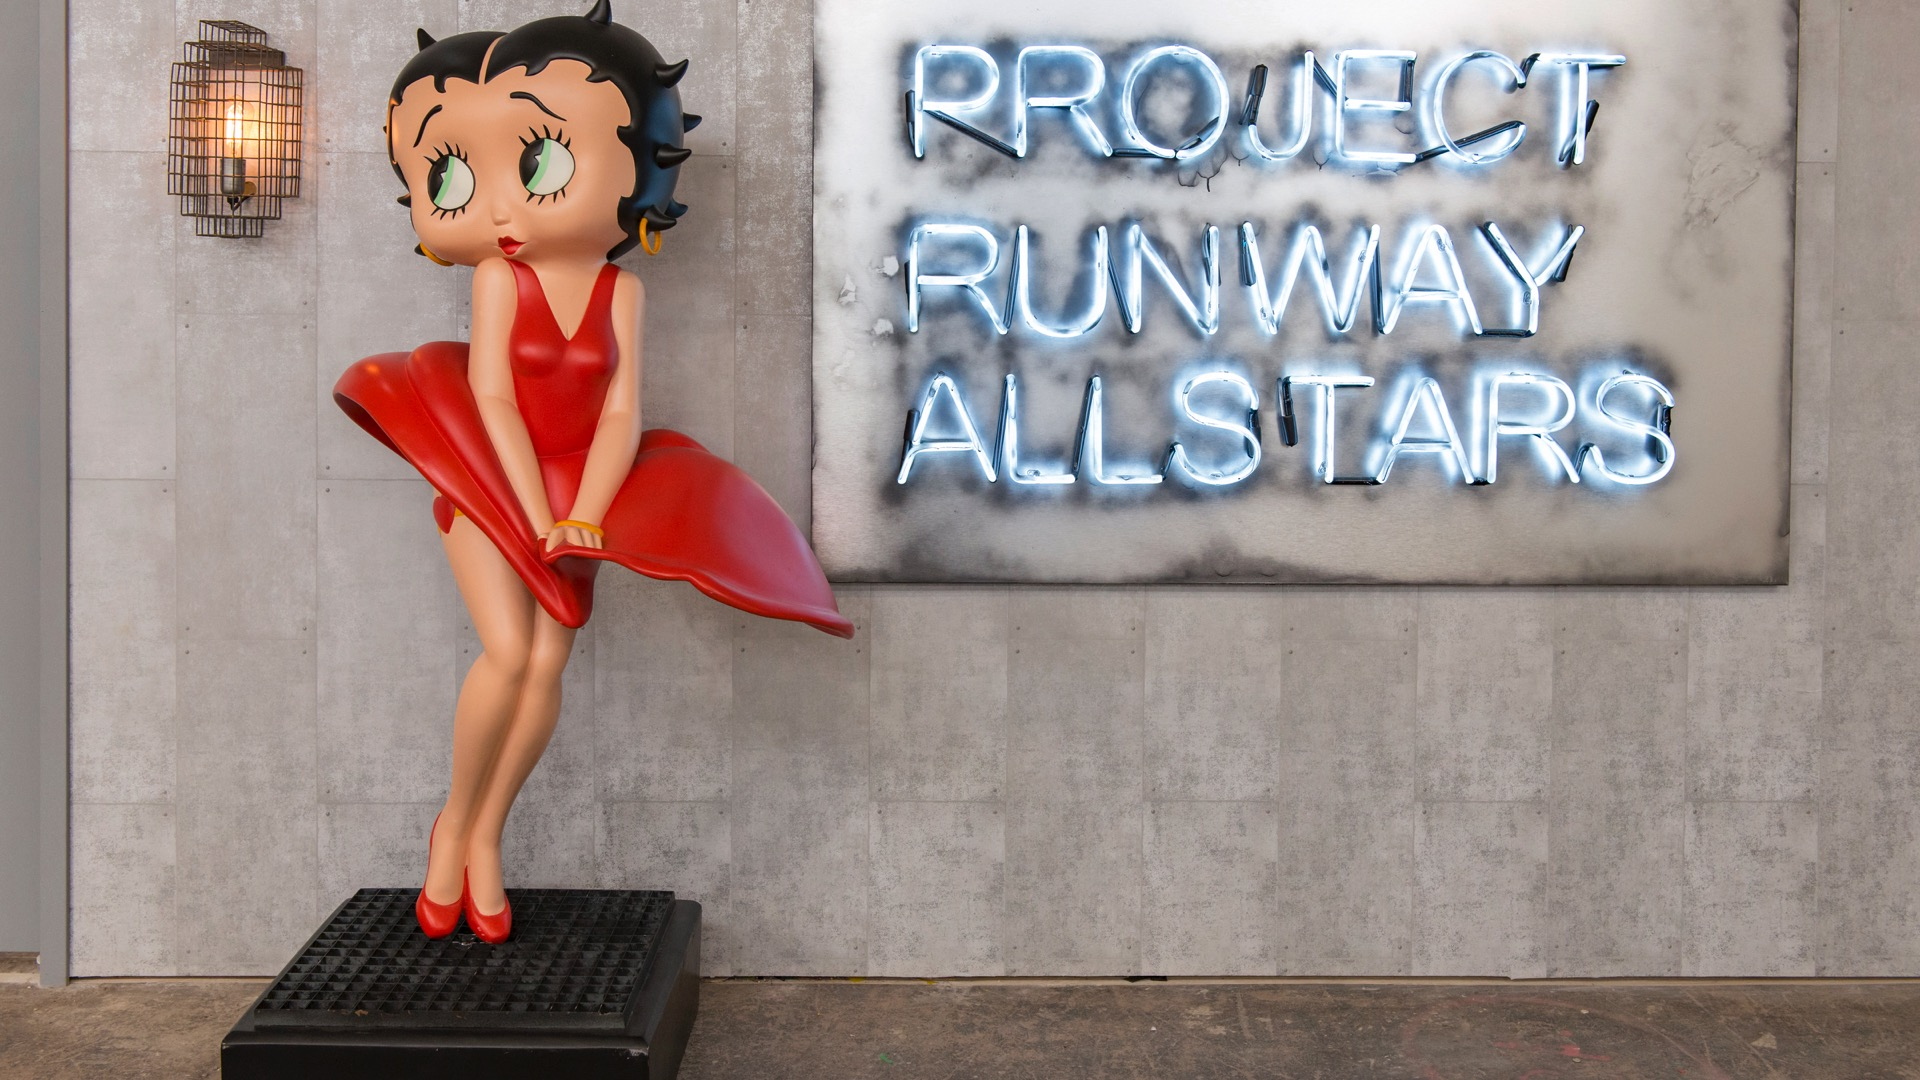 The Top 10 Moments From Season 6, Episode 6: Thrown for a Loop by Betty Boop